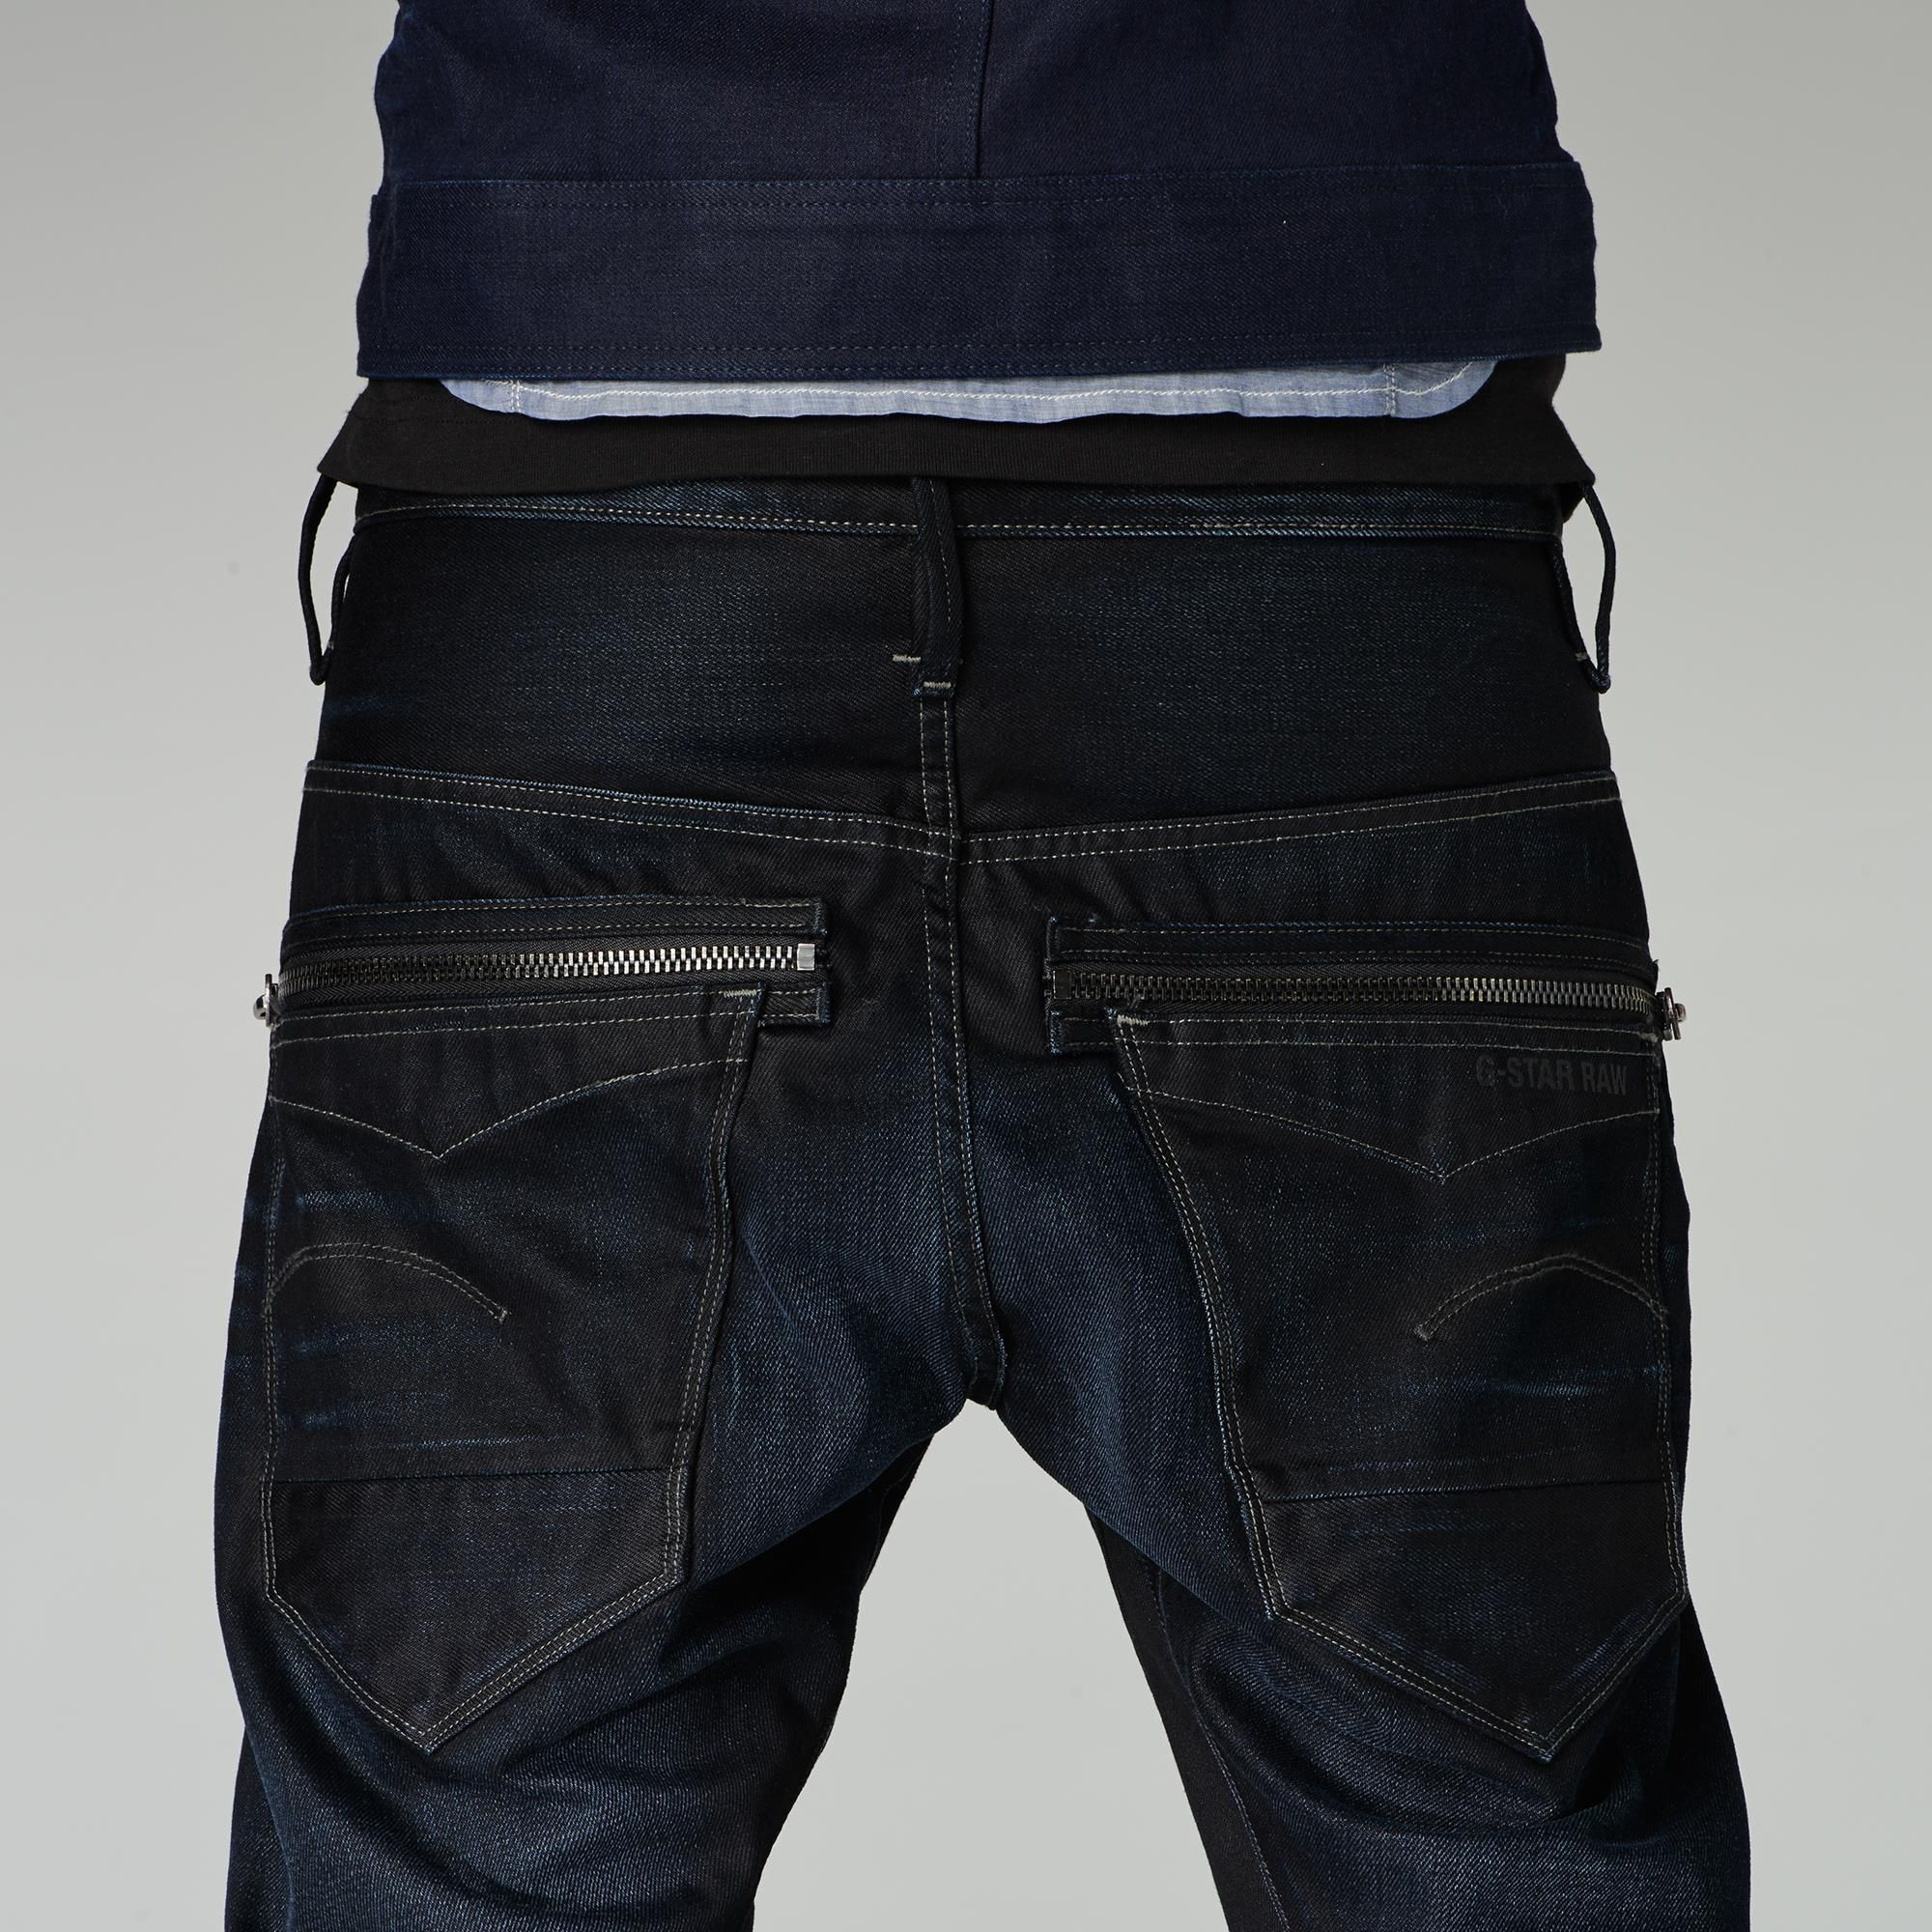 G-Star RAW   Hombres   Jeans   G-star New Riley 3d Loose Tapered